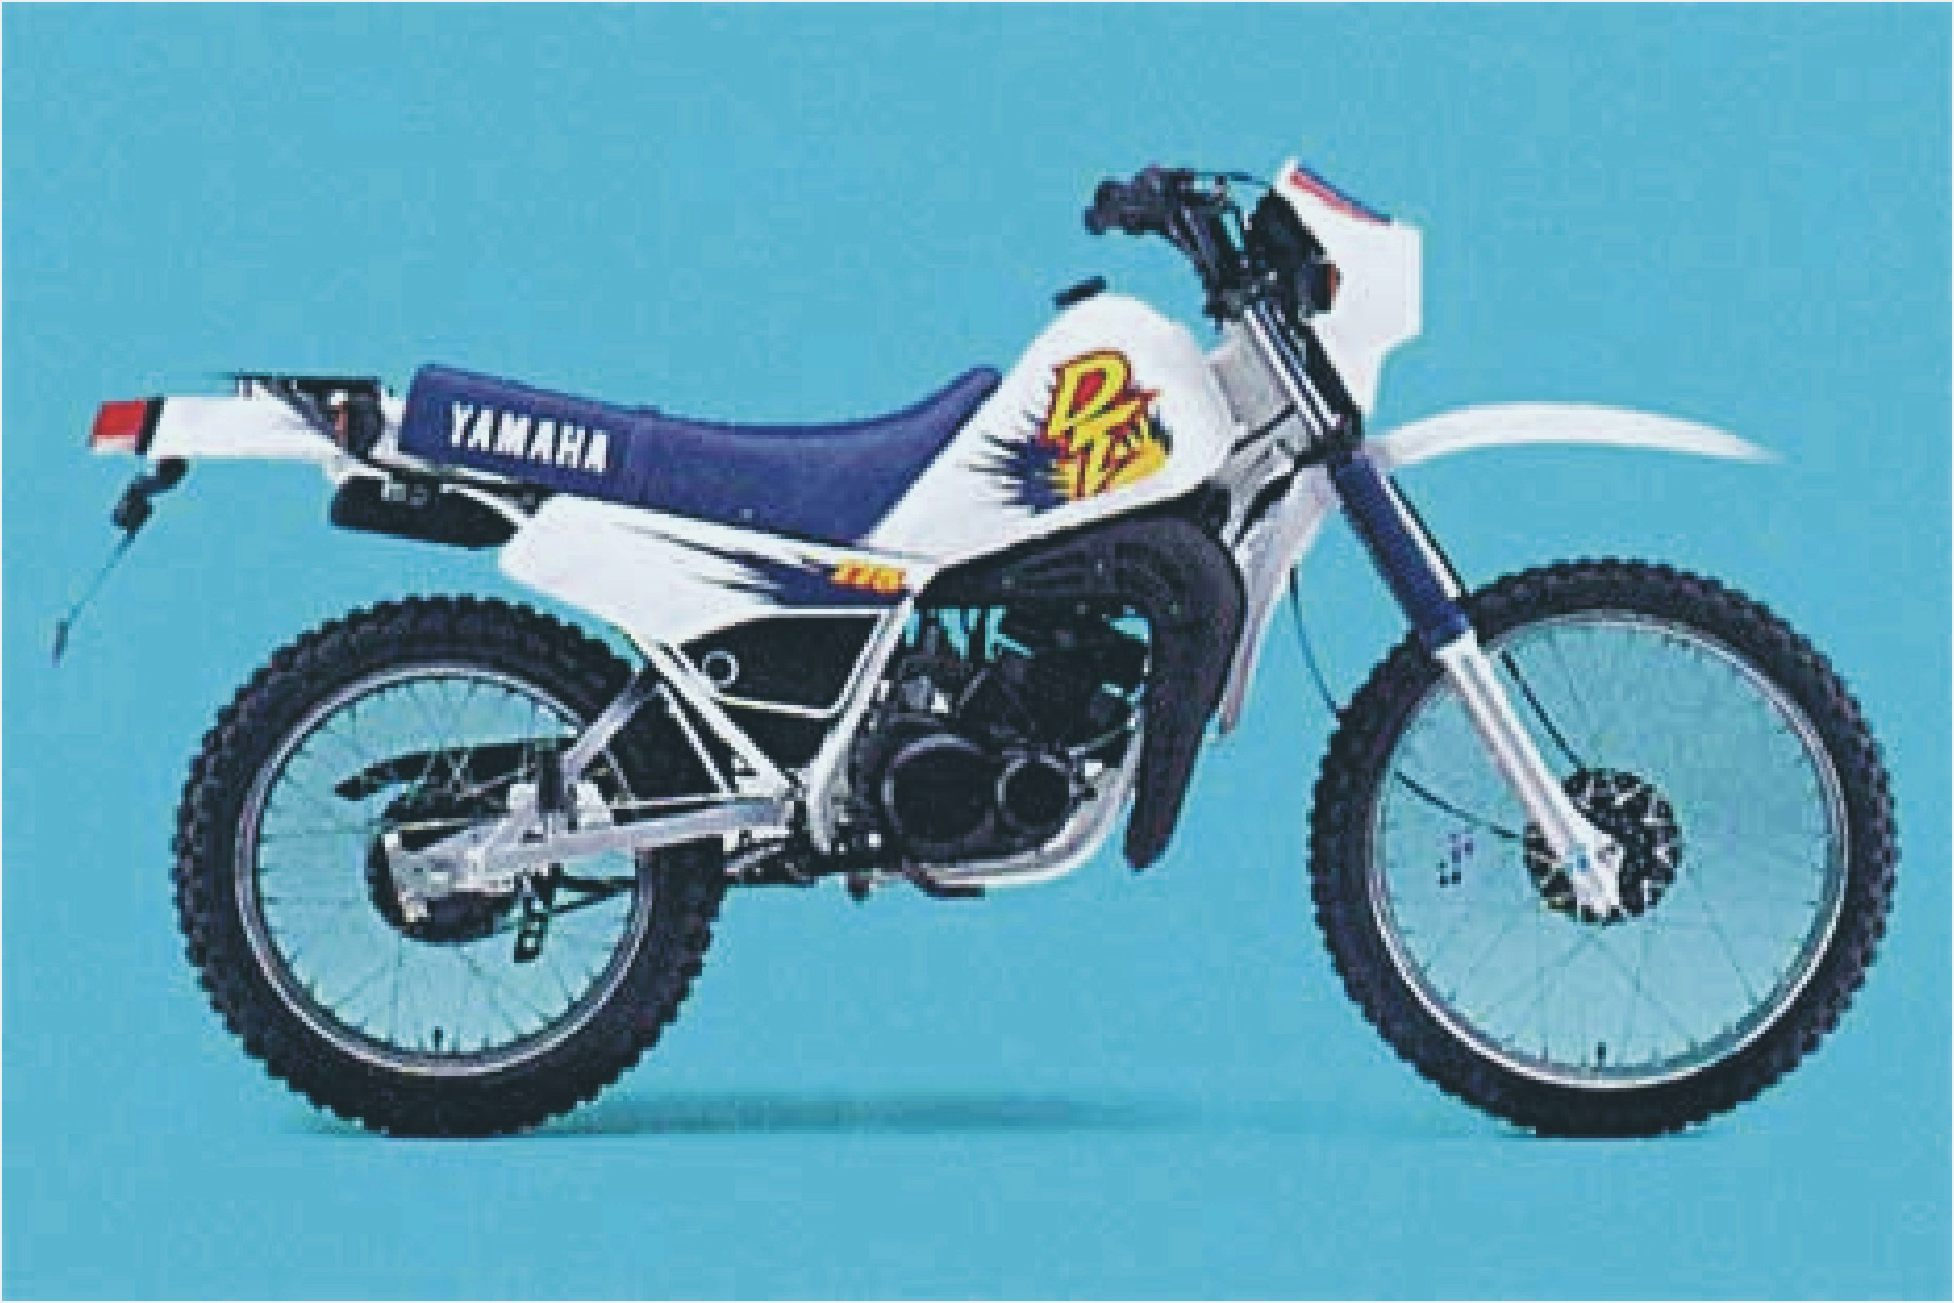 Yamaha DT 175 1974 images #90030